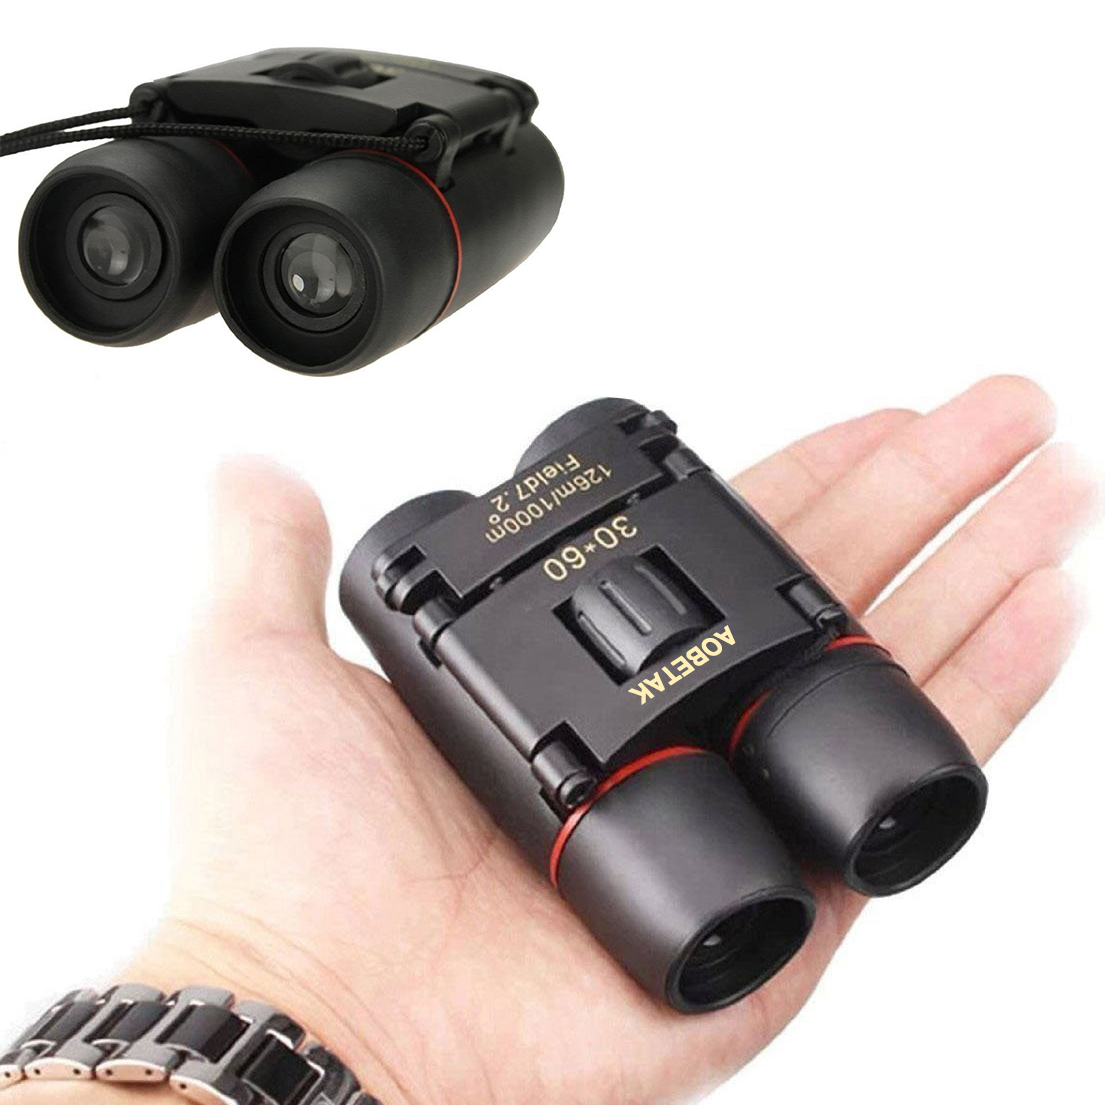 AOBETAK 30x60 Compact Small Binoculars Powerful Folding Telescope With Clean Cloth and Carry Case, Lightweight Pocket Binoculars For Adults, kids, Bird Watching, Astronomy